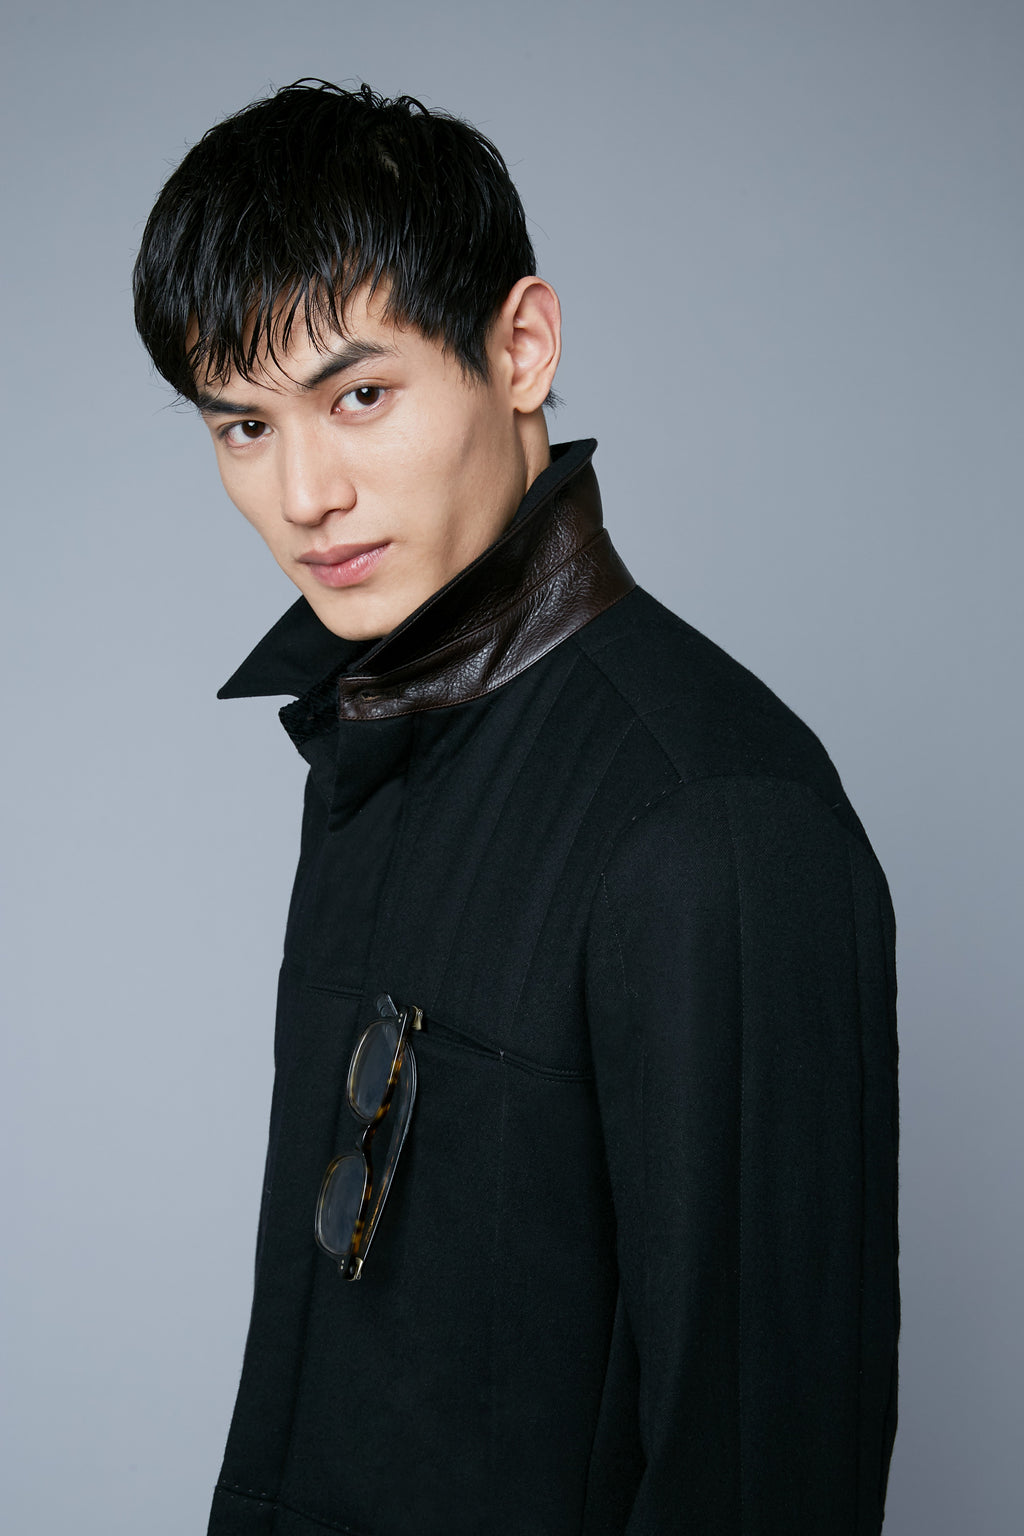 Detail View: Model Qiang Li wearing Down Téchin Jacket